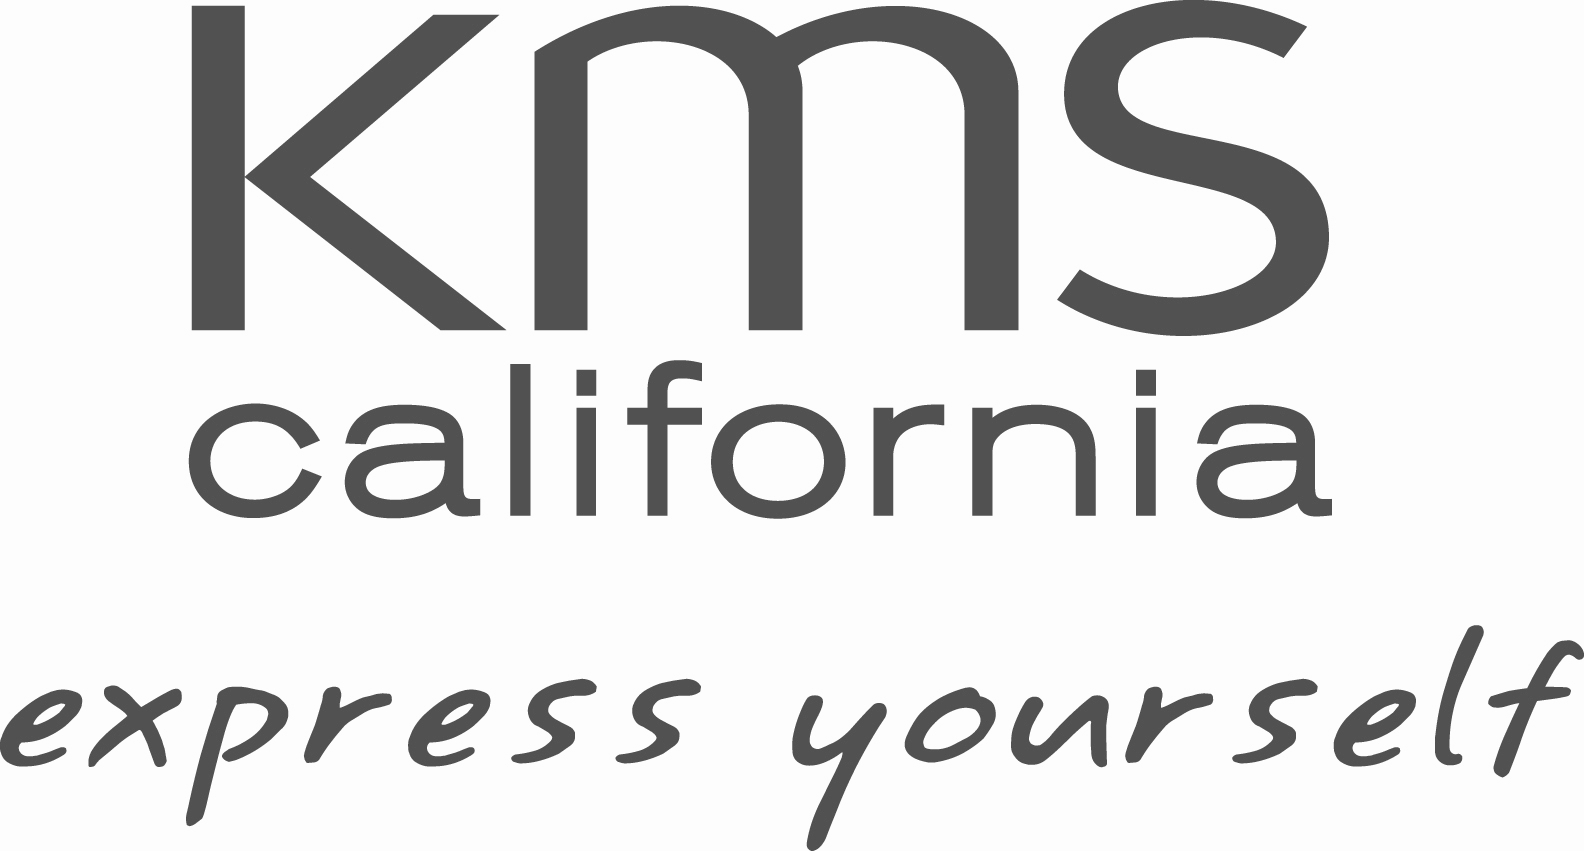 Kms hair products nz